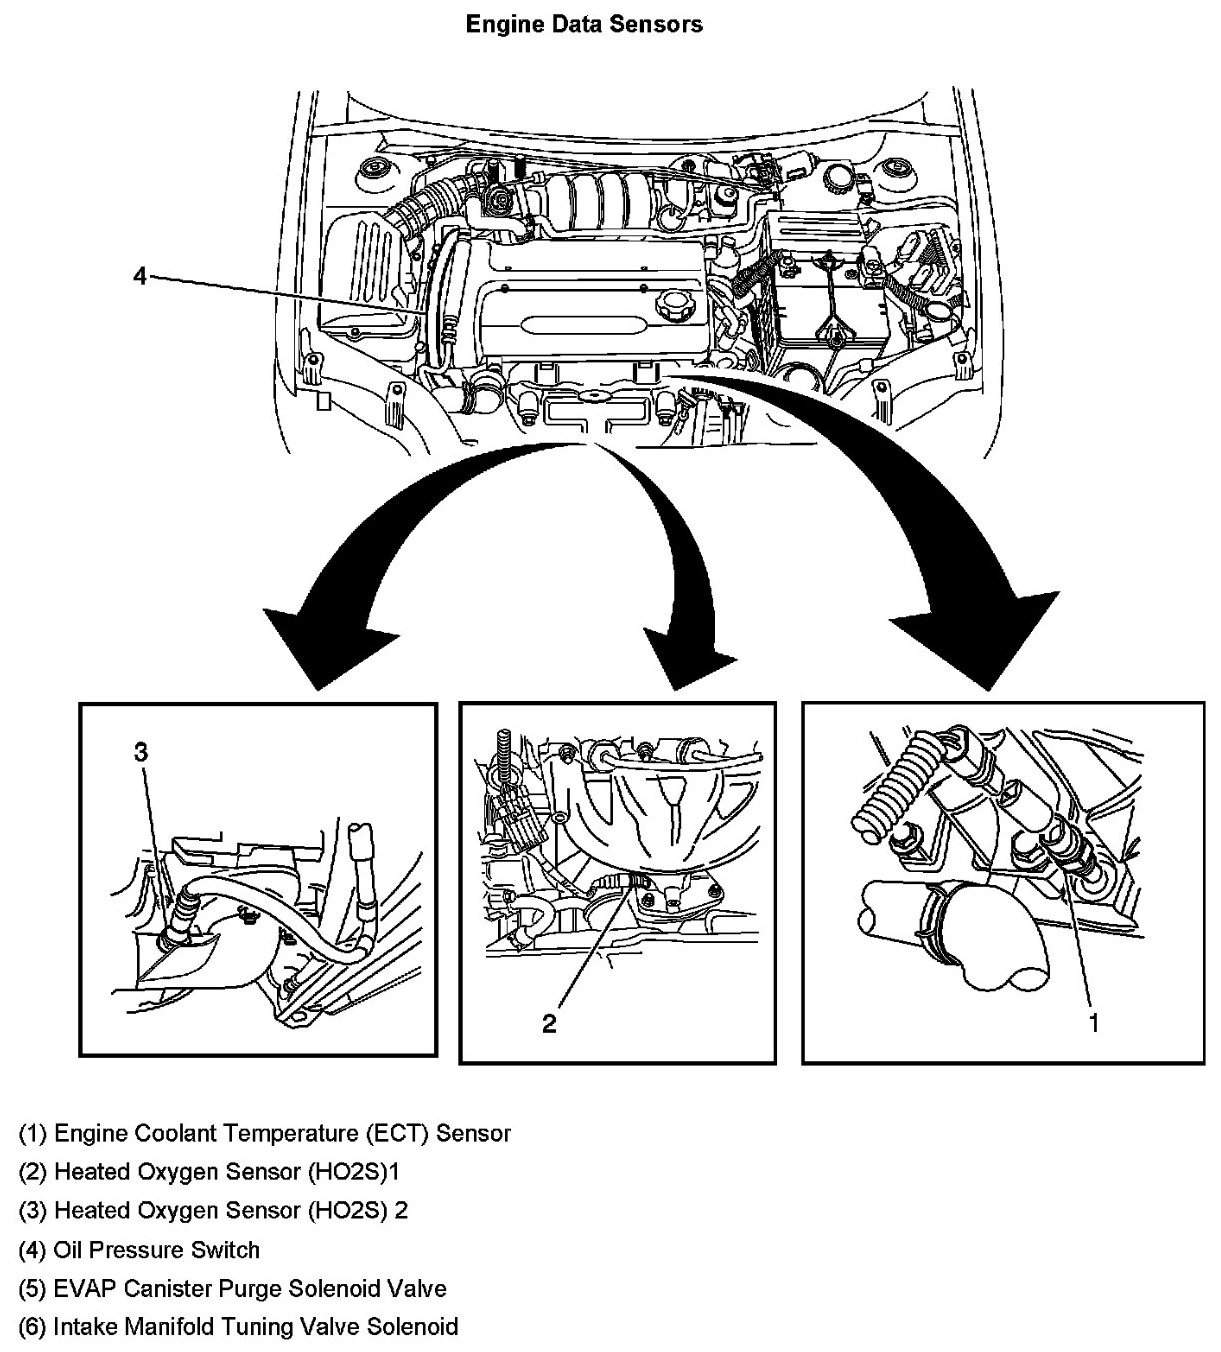 2005 chevrolet aveo engine problems